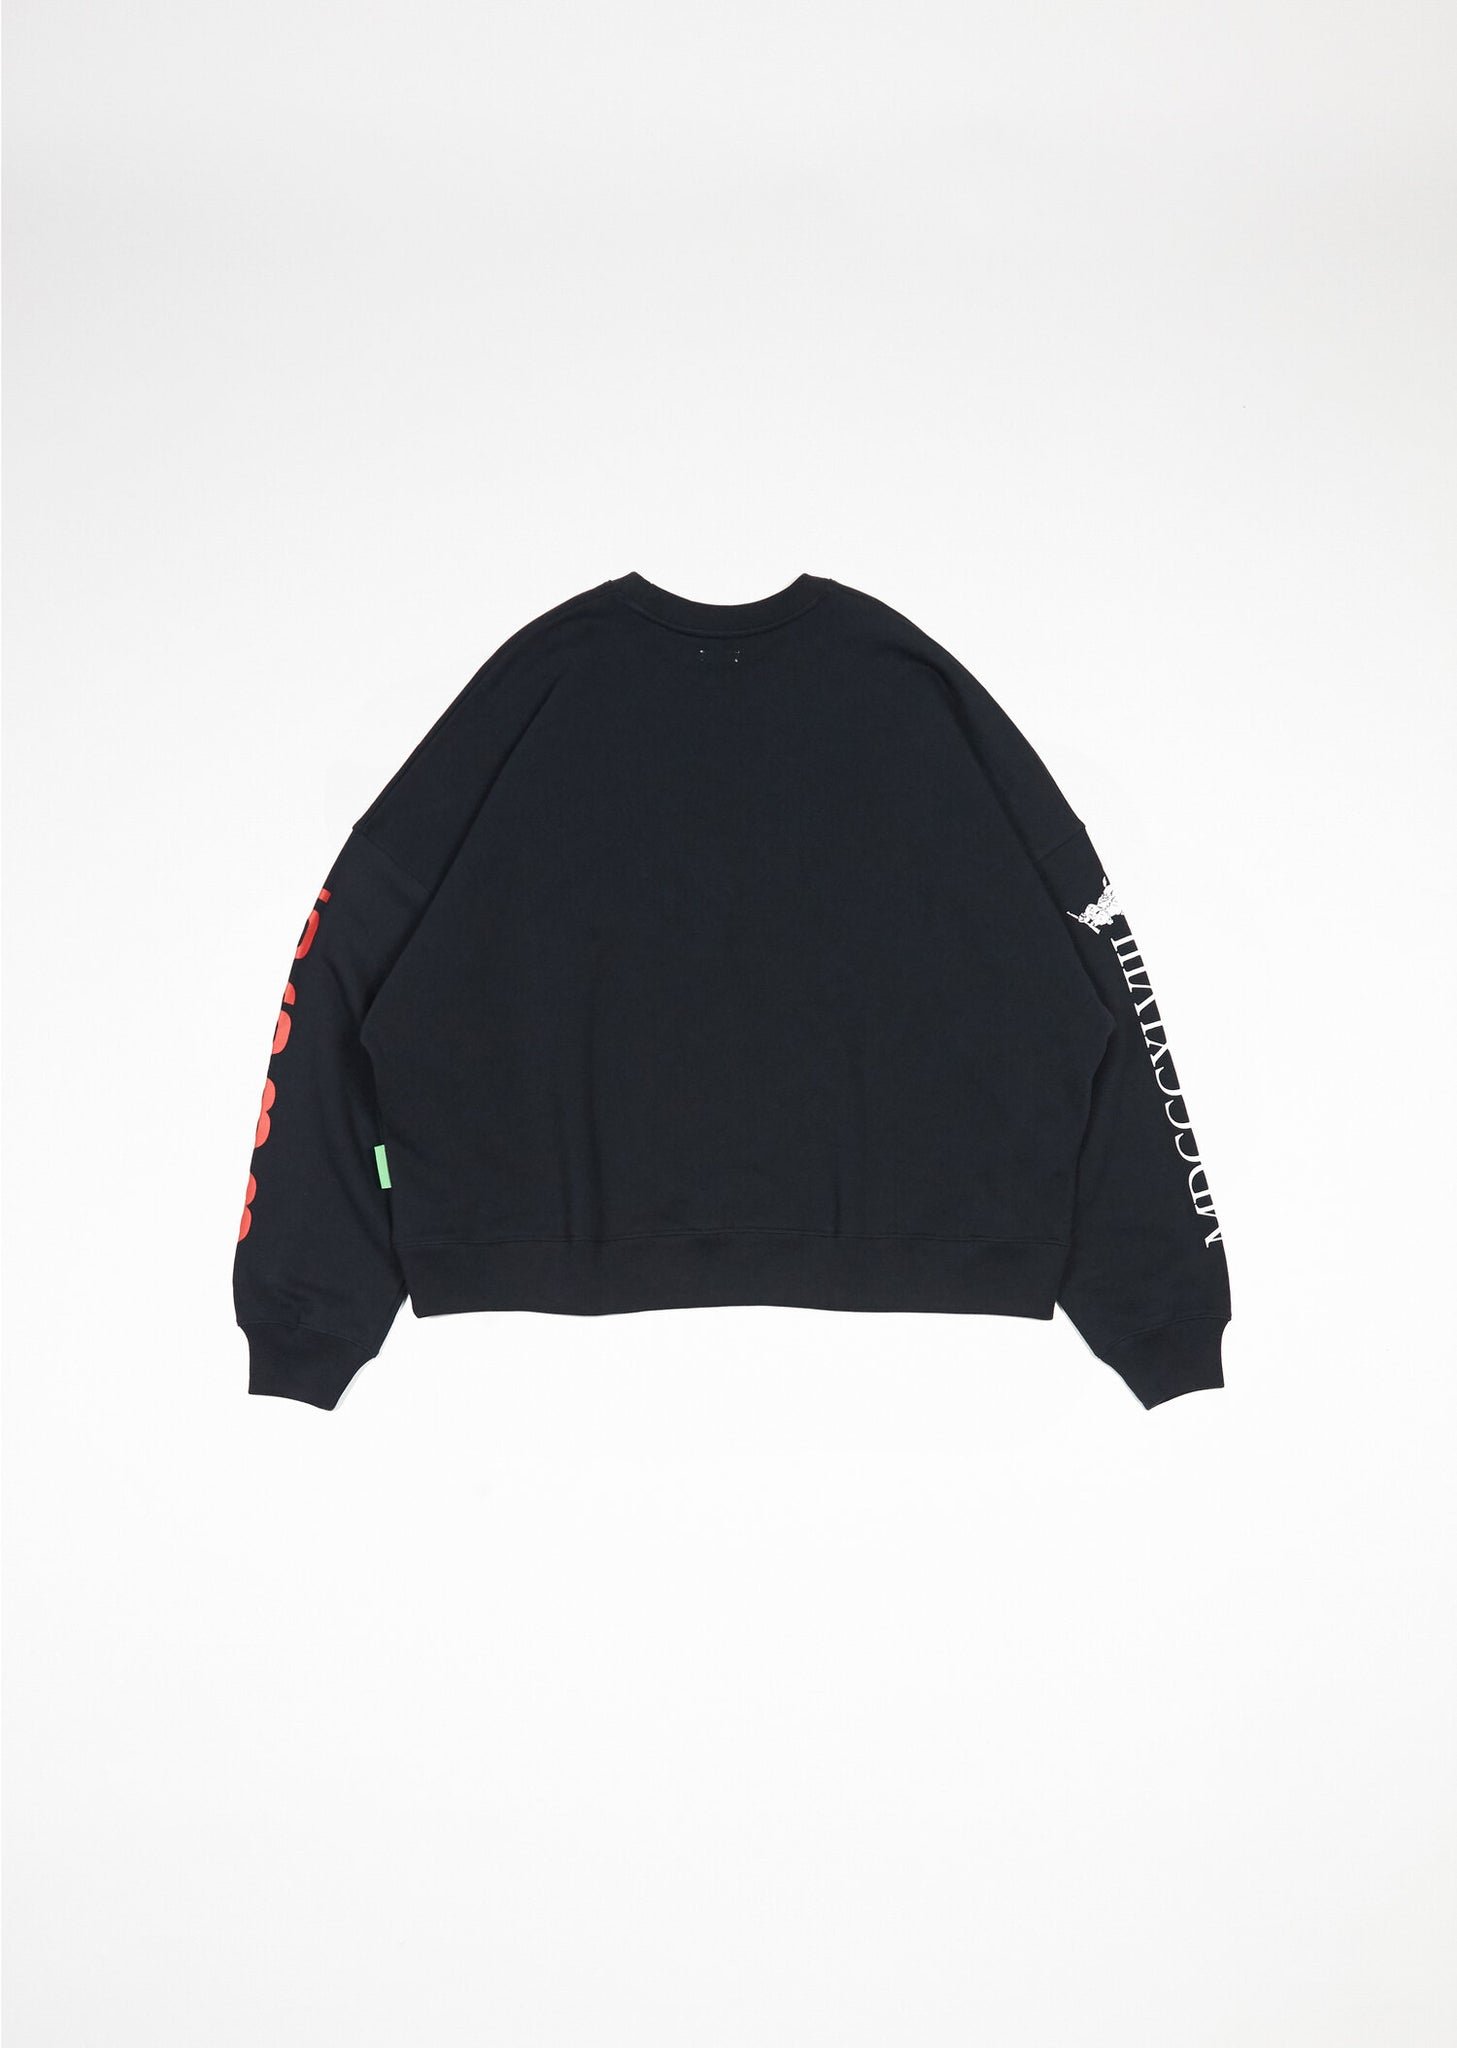 RESTOCK Willy Chavarria /CANAL STREET RUFF NECK LS